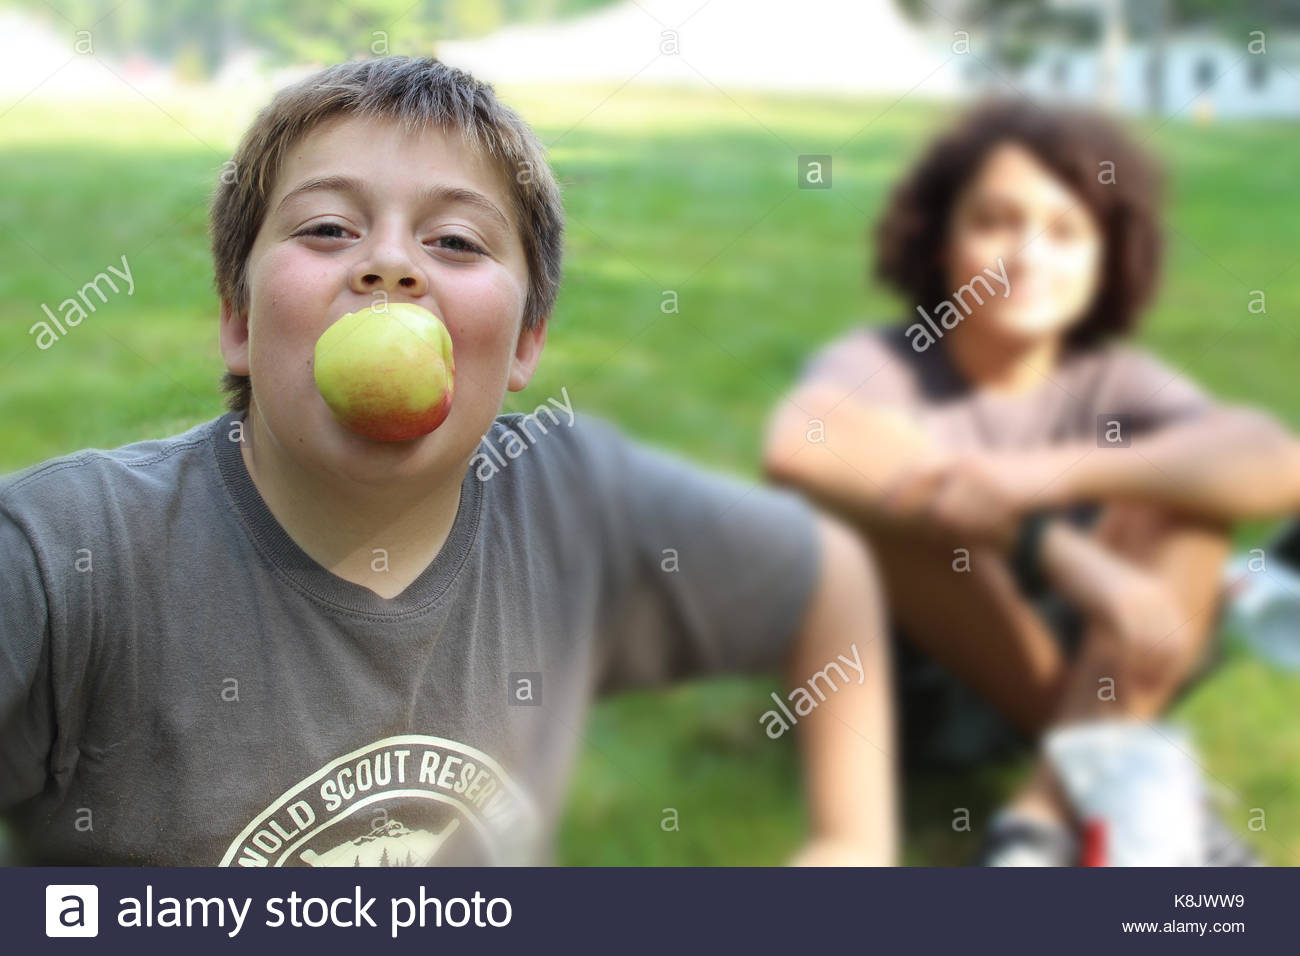 Boy Scout Camp - Stock Image